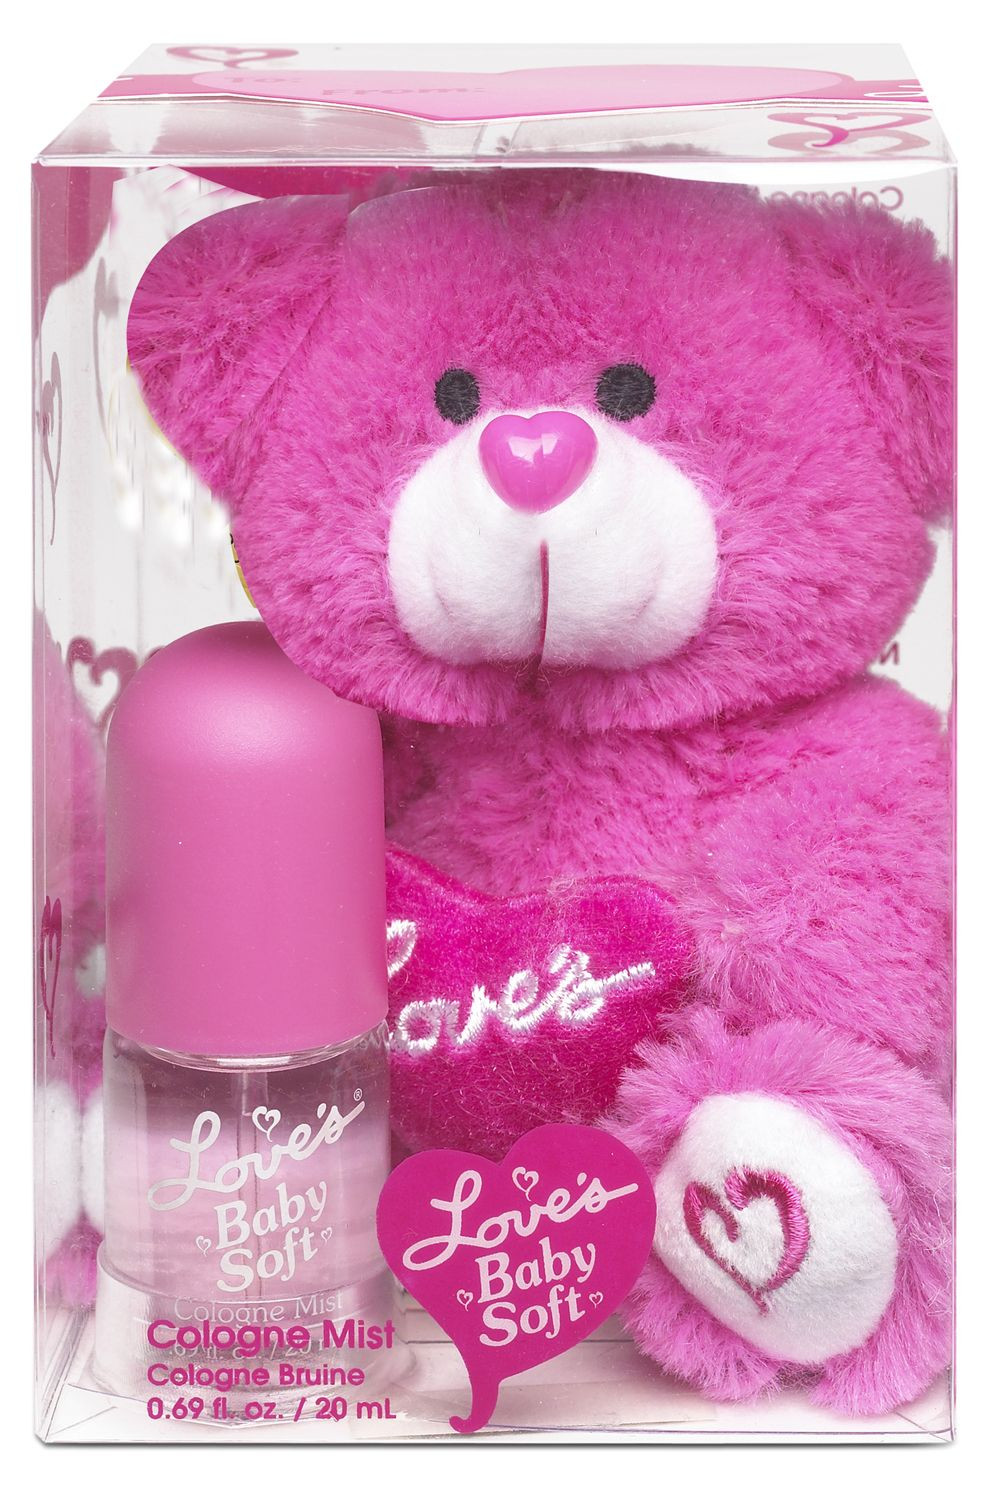 Loves Baby Soft Perfume Gift Sets  Love s Baby Soft Fragrance Gift Set with Bear